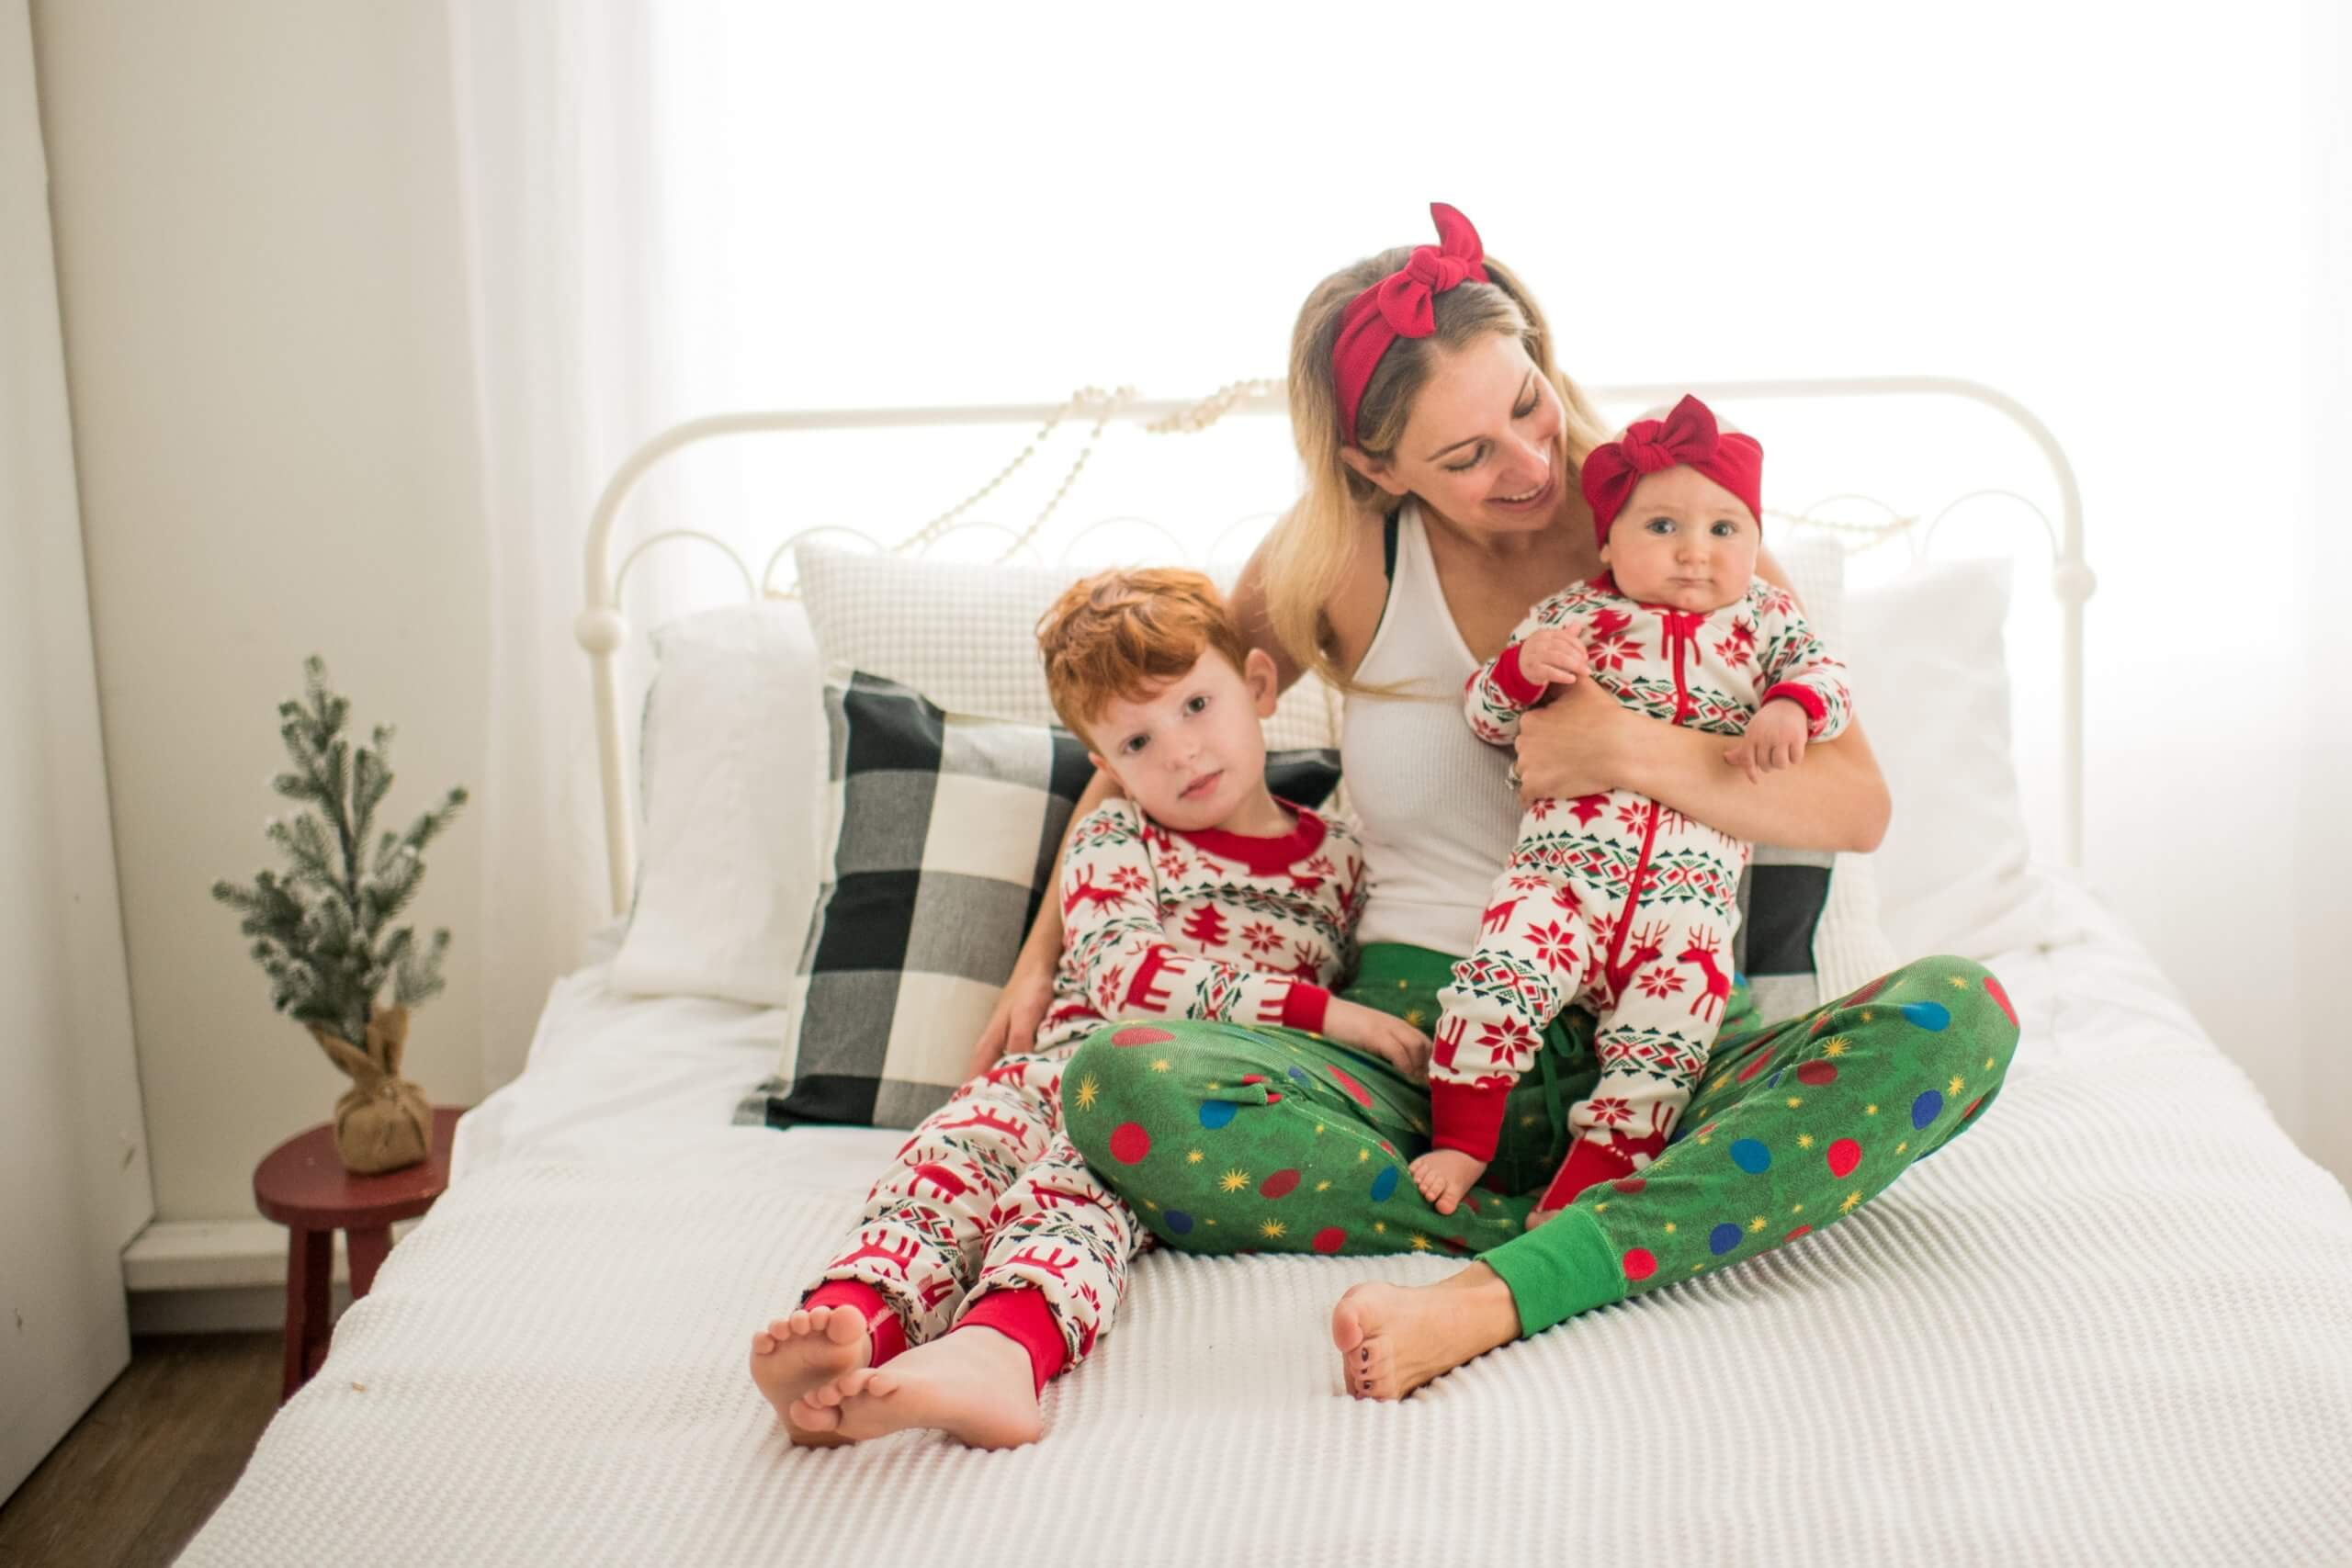 #MomLife With Kelsey Of Small Batch Social Co.